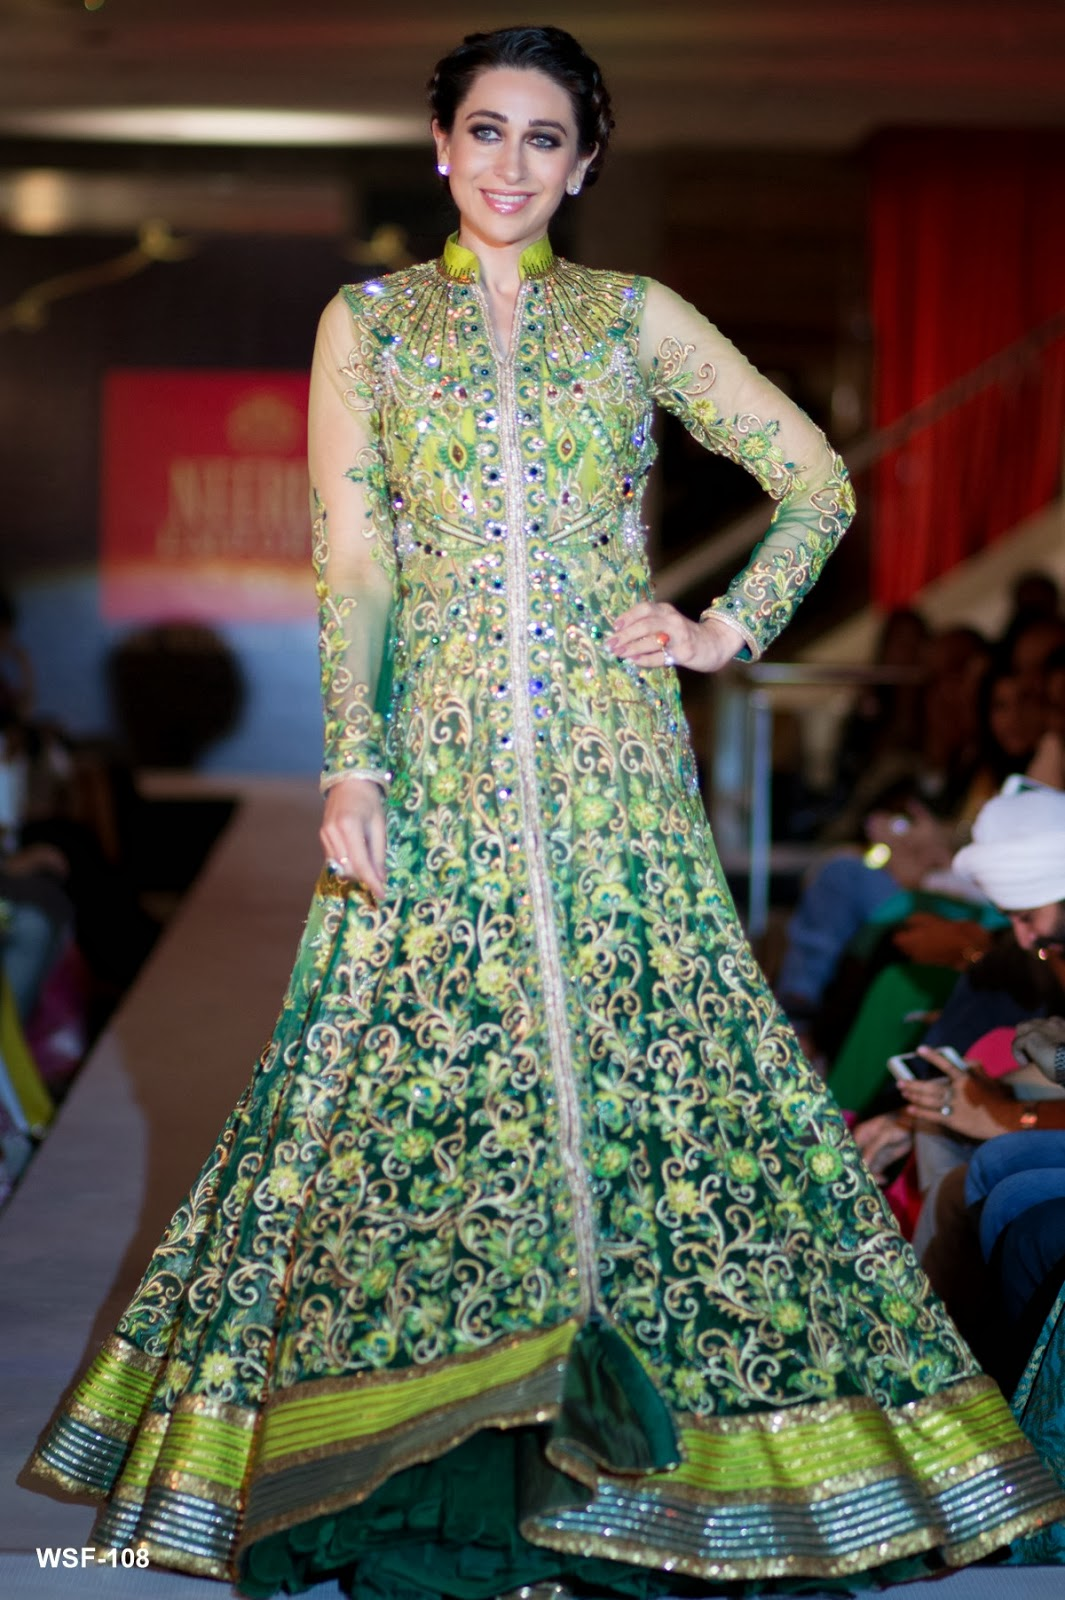 Karisma Kapoor in Green Bridal Dress